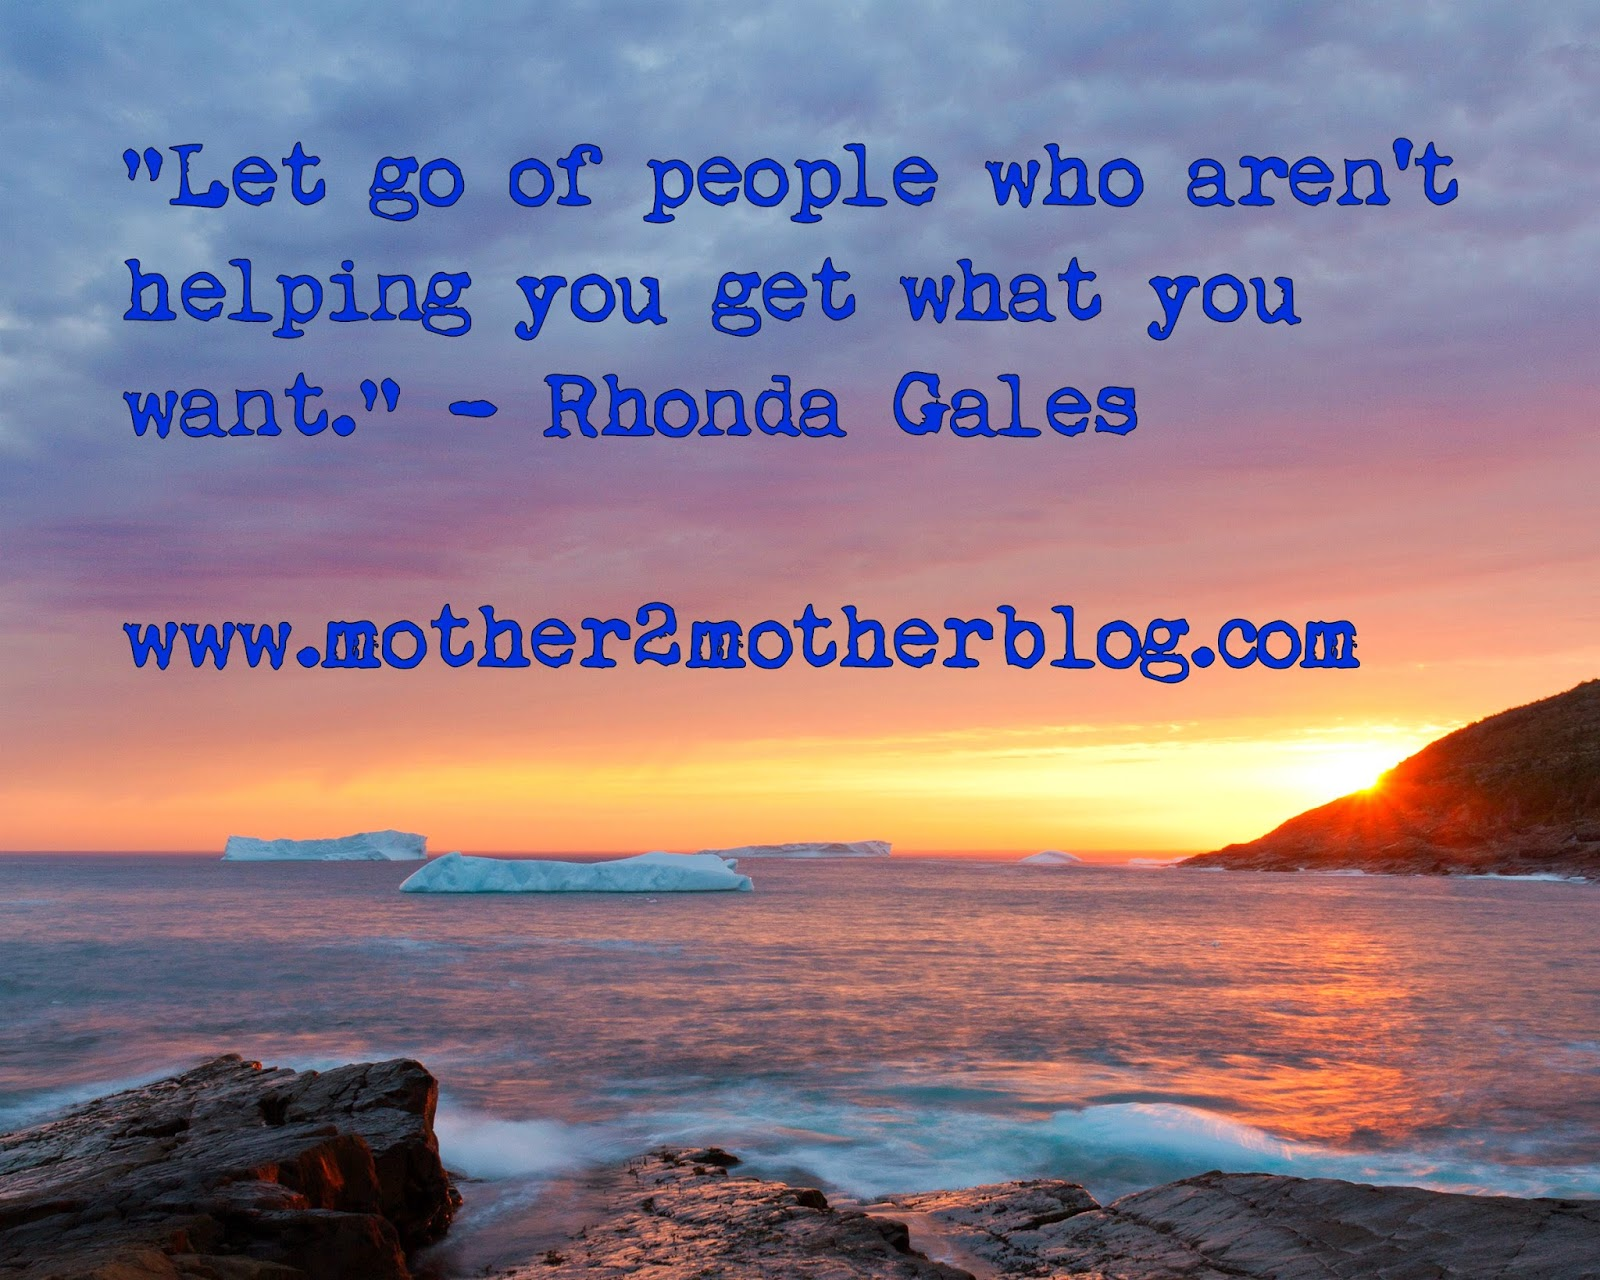 Inspirational quotes about letting go